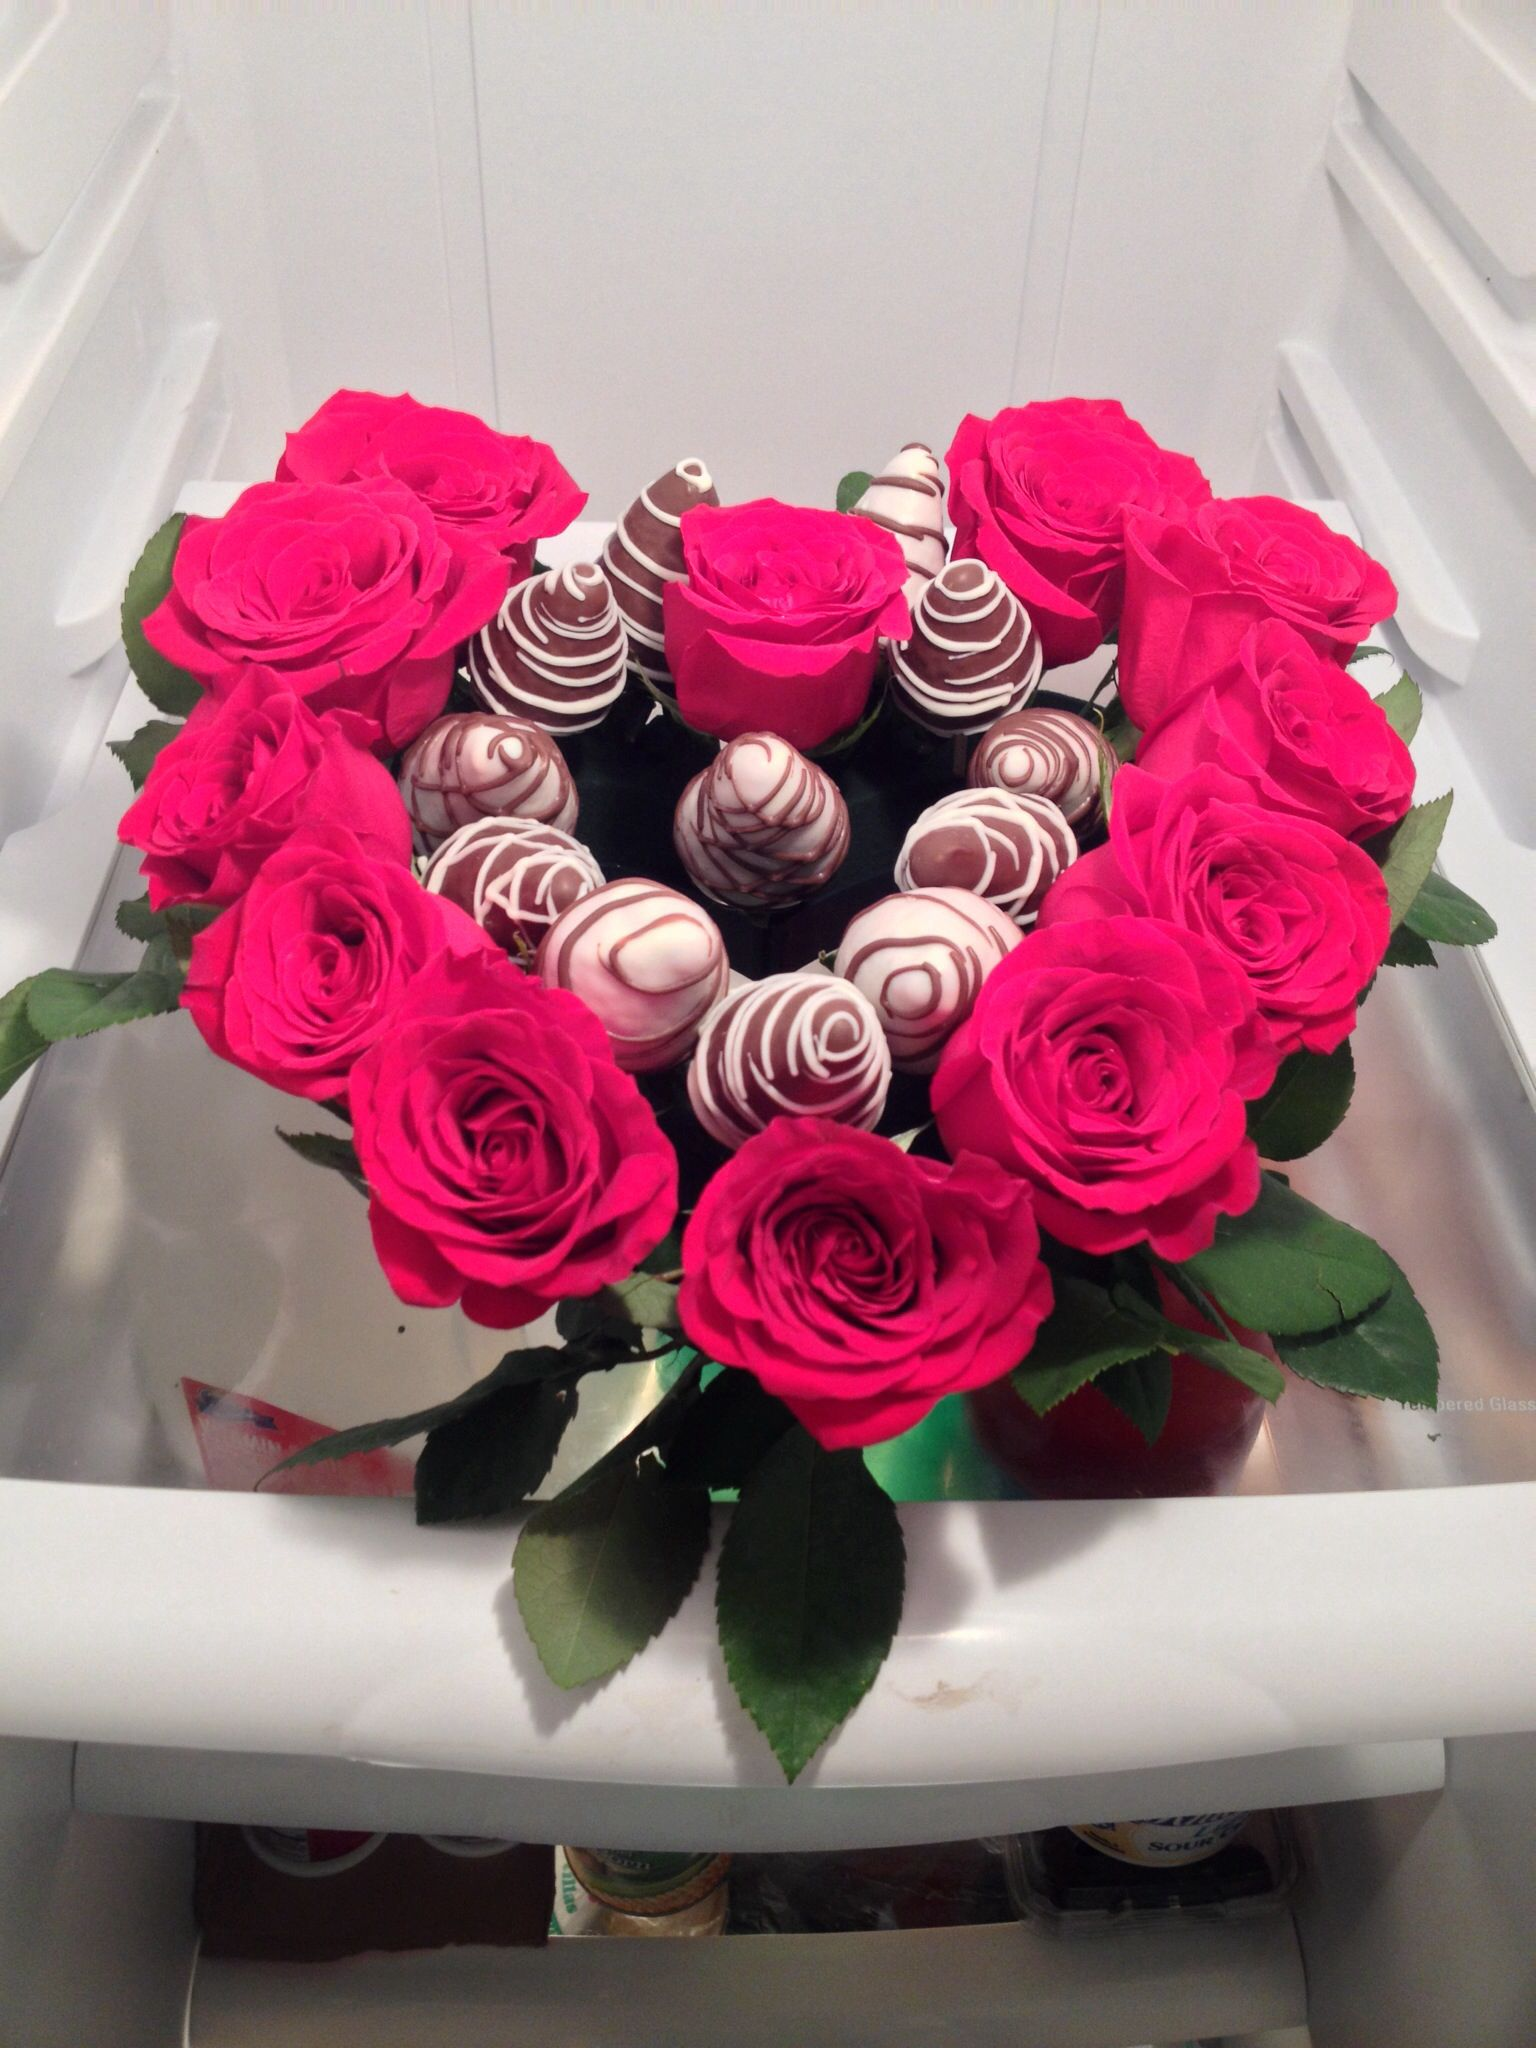 1dozen chocolate covered strawberries 1dozen red roses | Food and ...